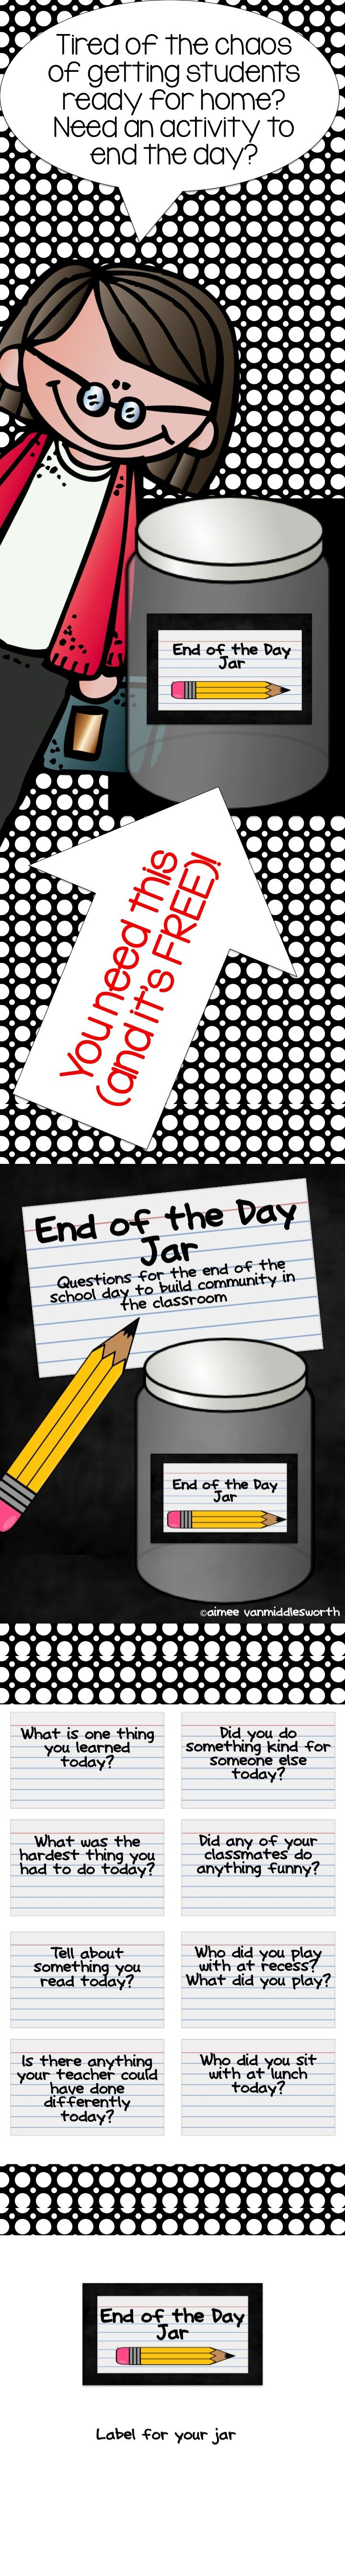 The End of the Jar is a great way to end the school day and wonderful for classroom management!